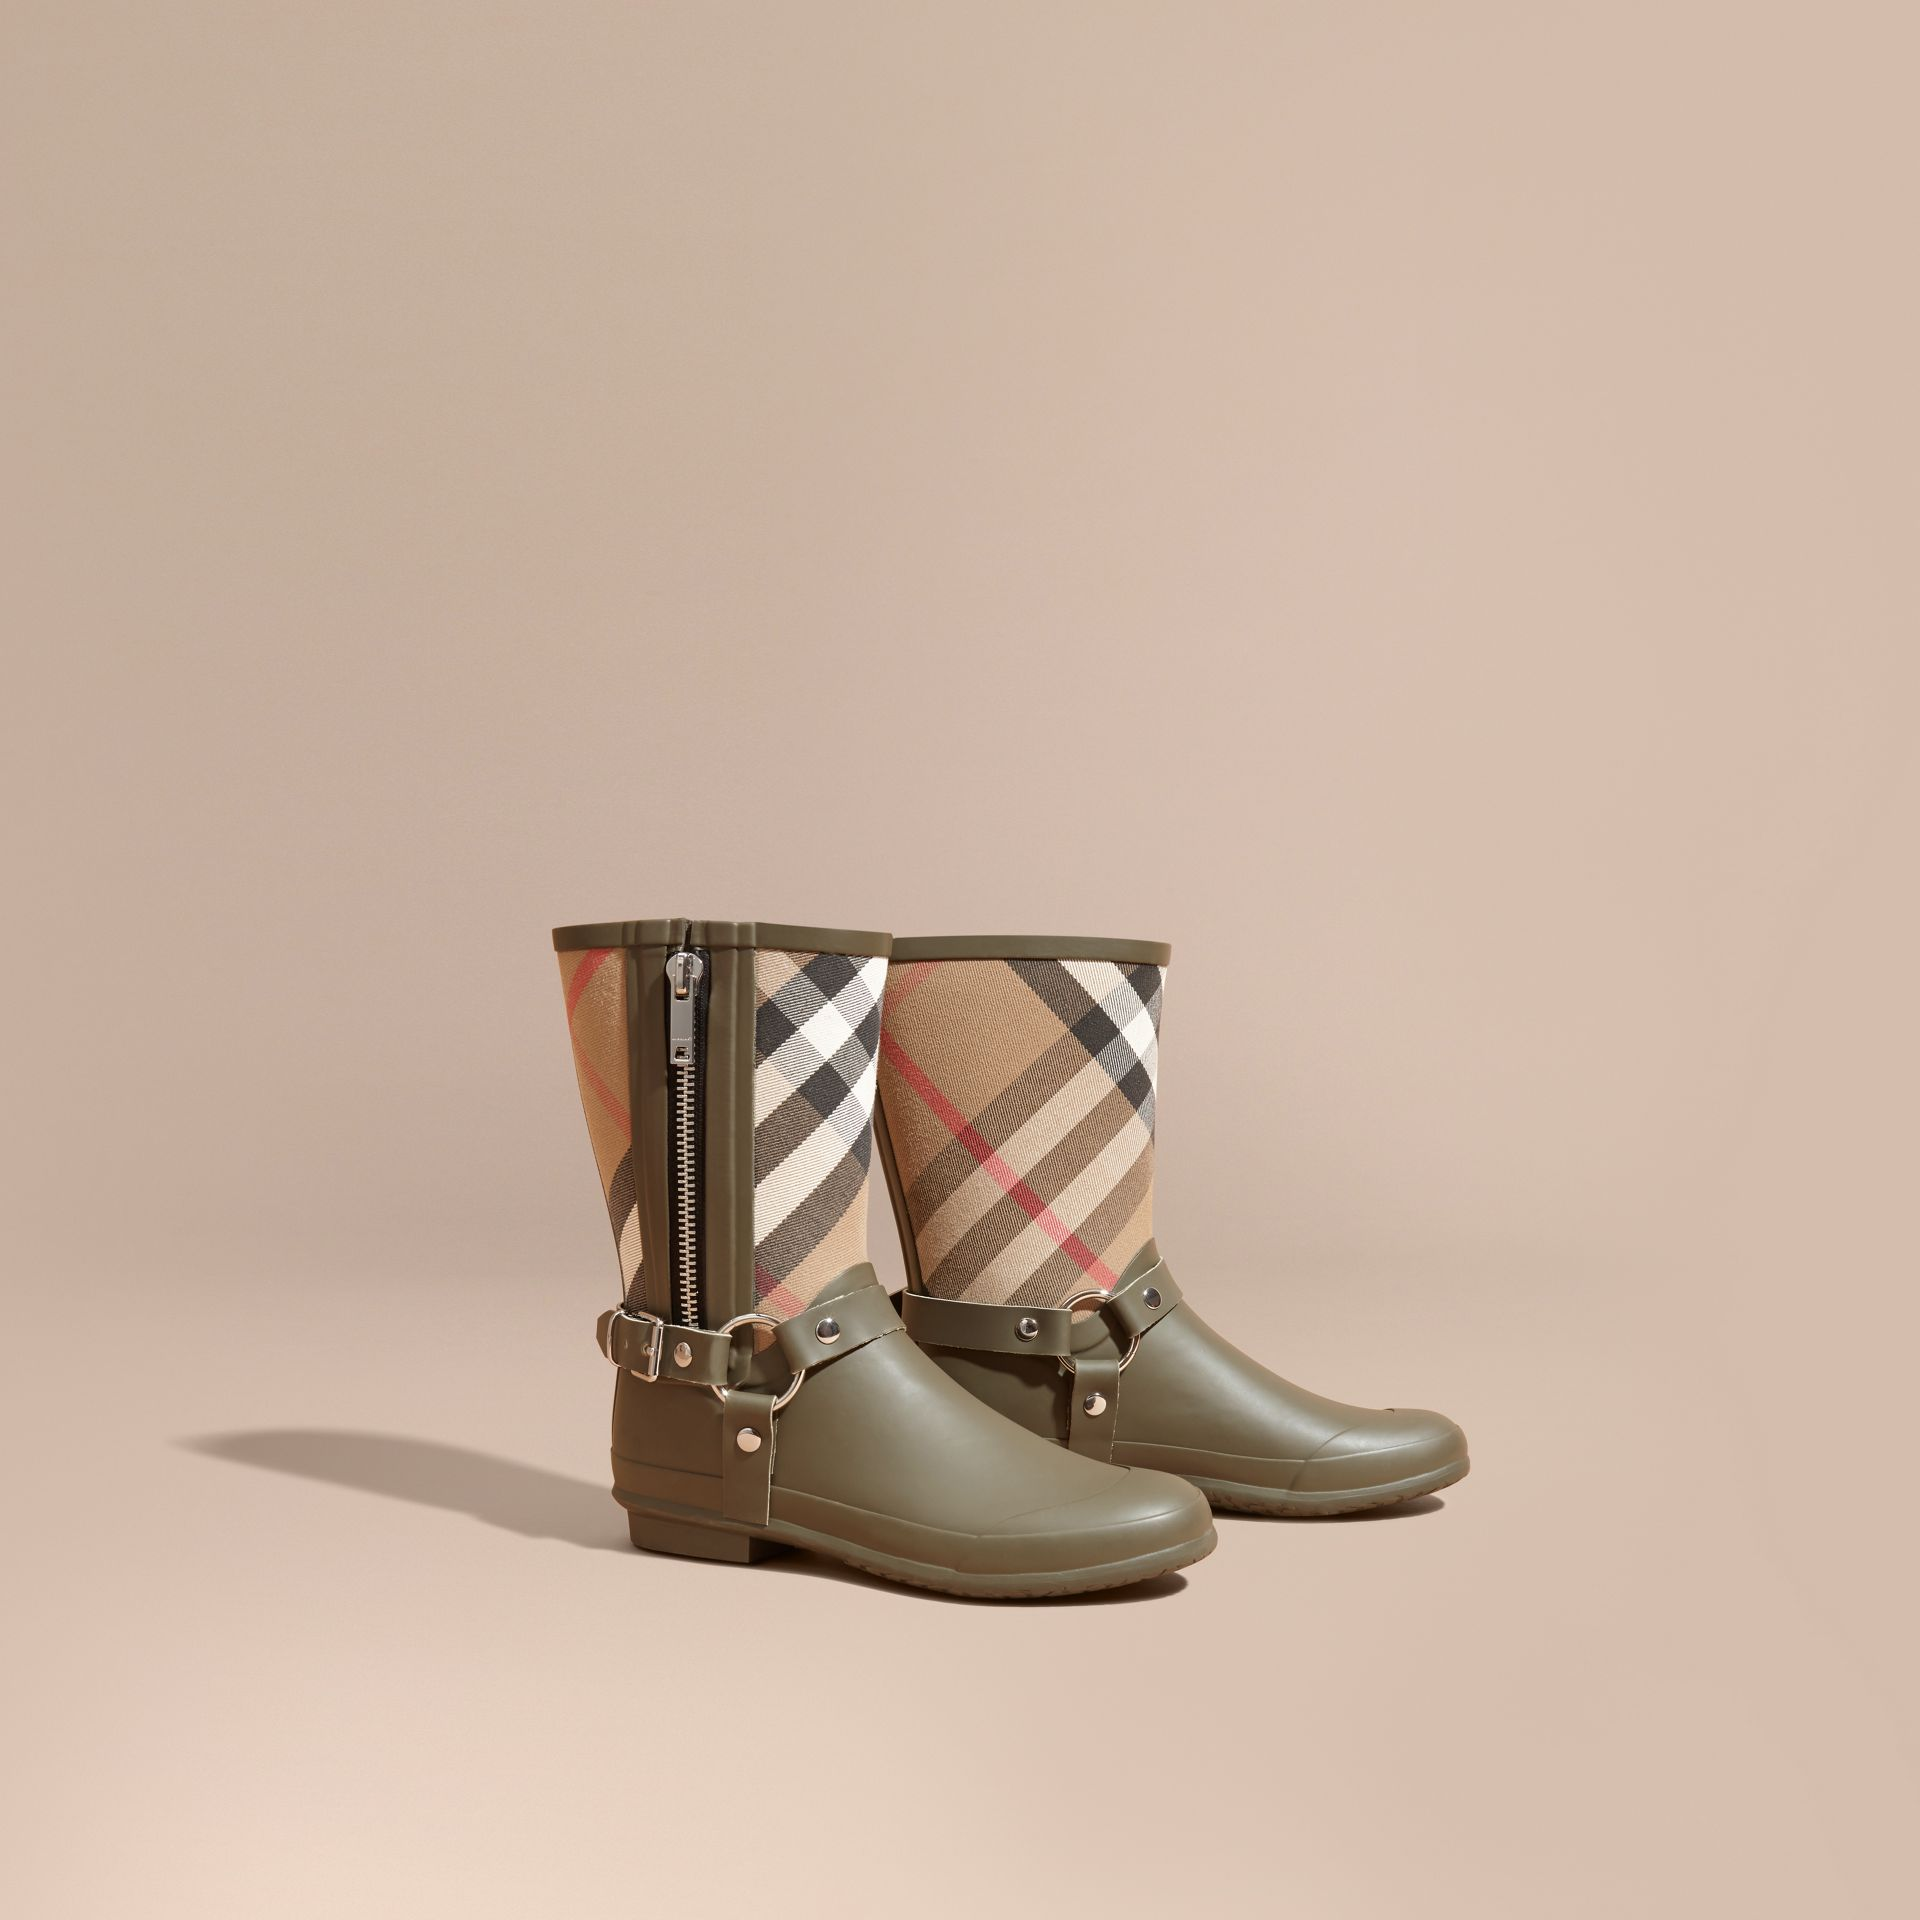 Buckle and Strap Detail Check Rain Boots - gallery image 1